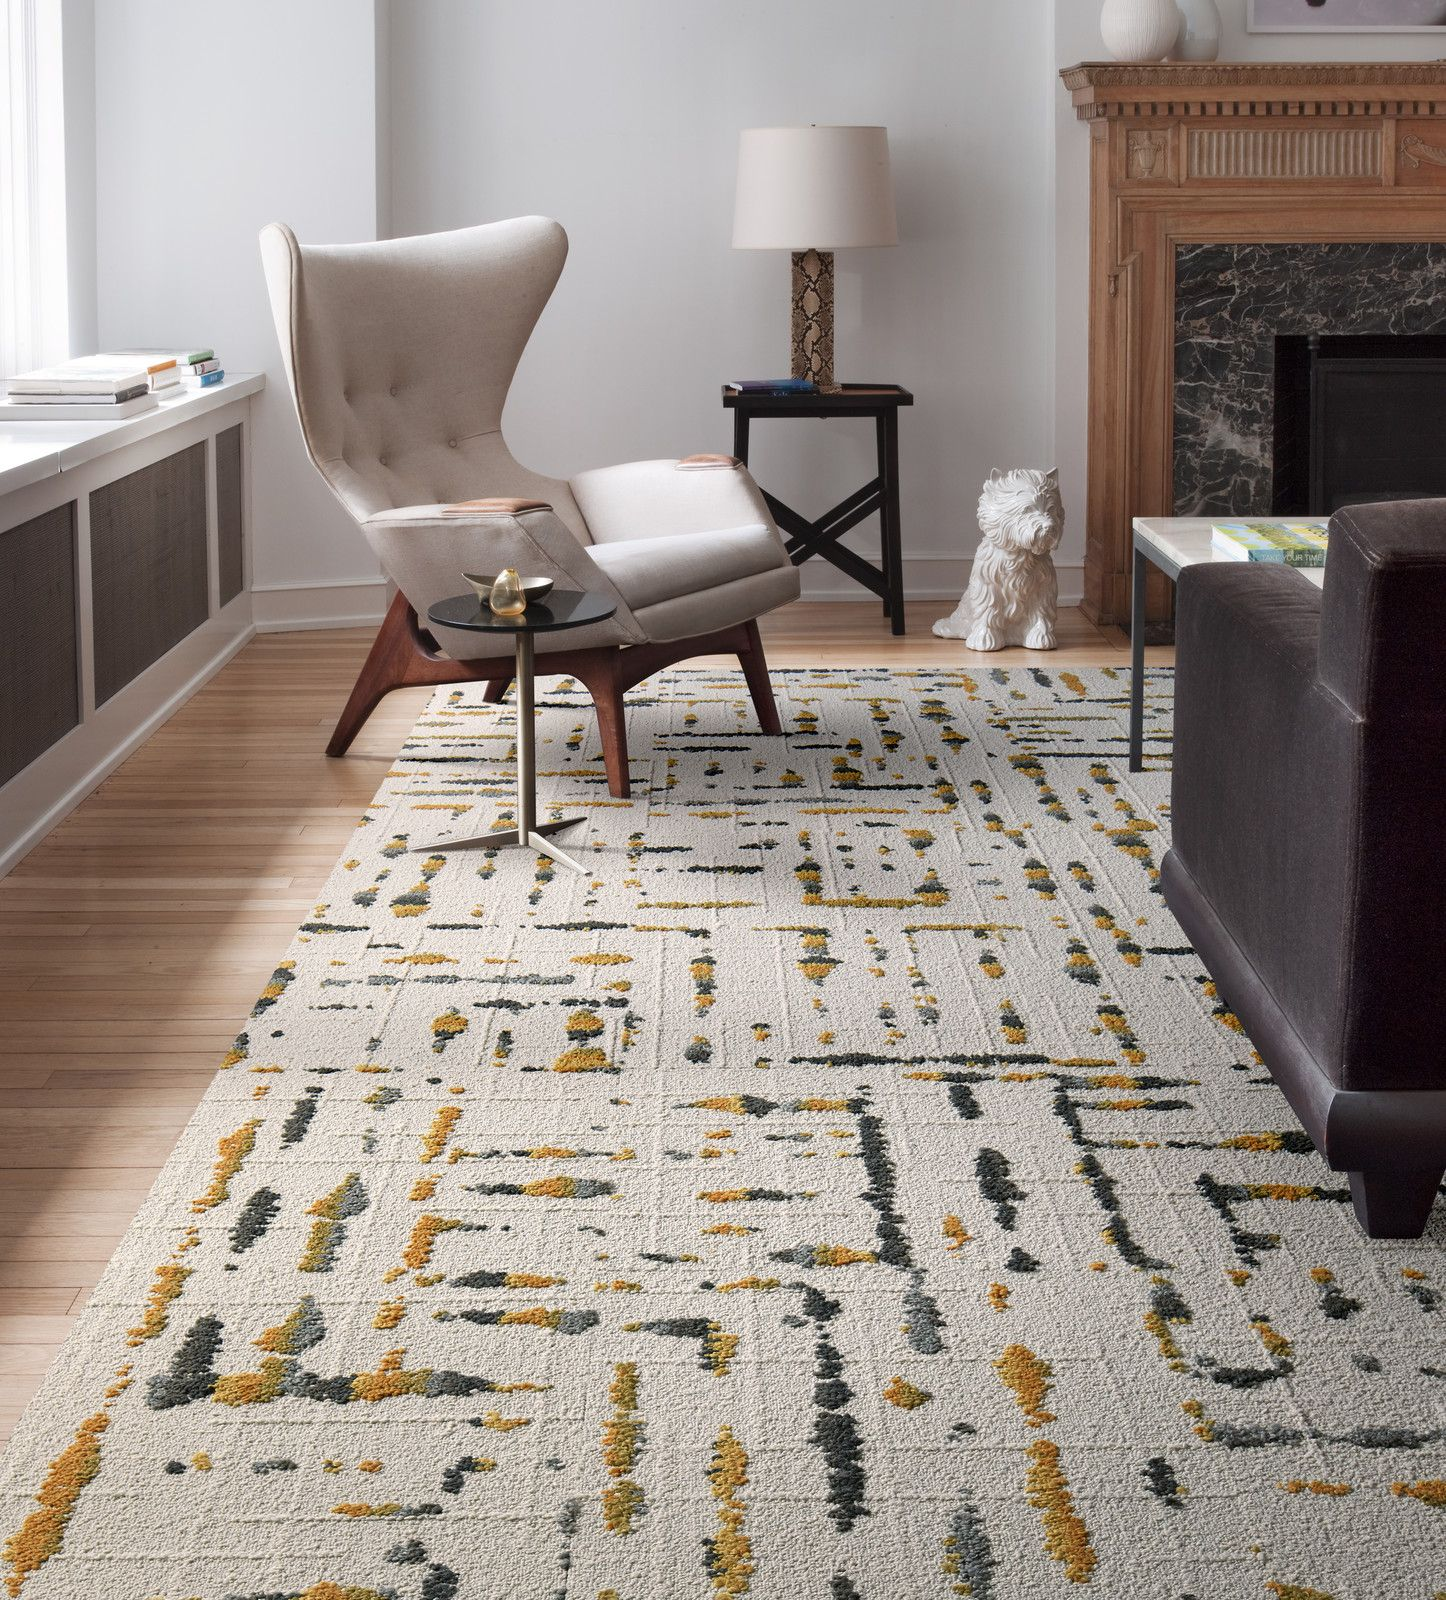 Mix and Match the New FLOR Rug Styles to Your Heart's ...